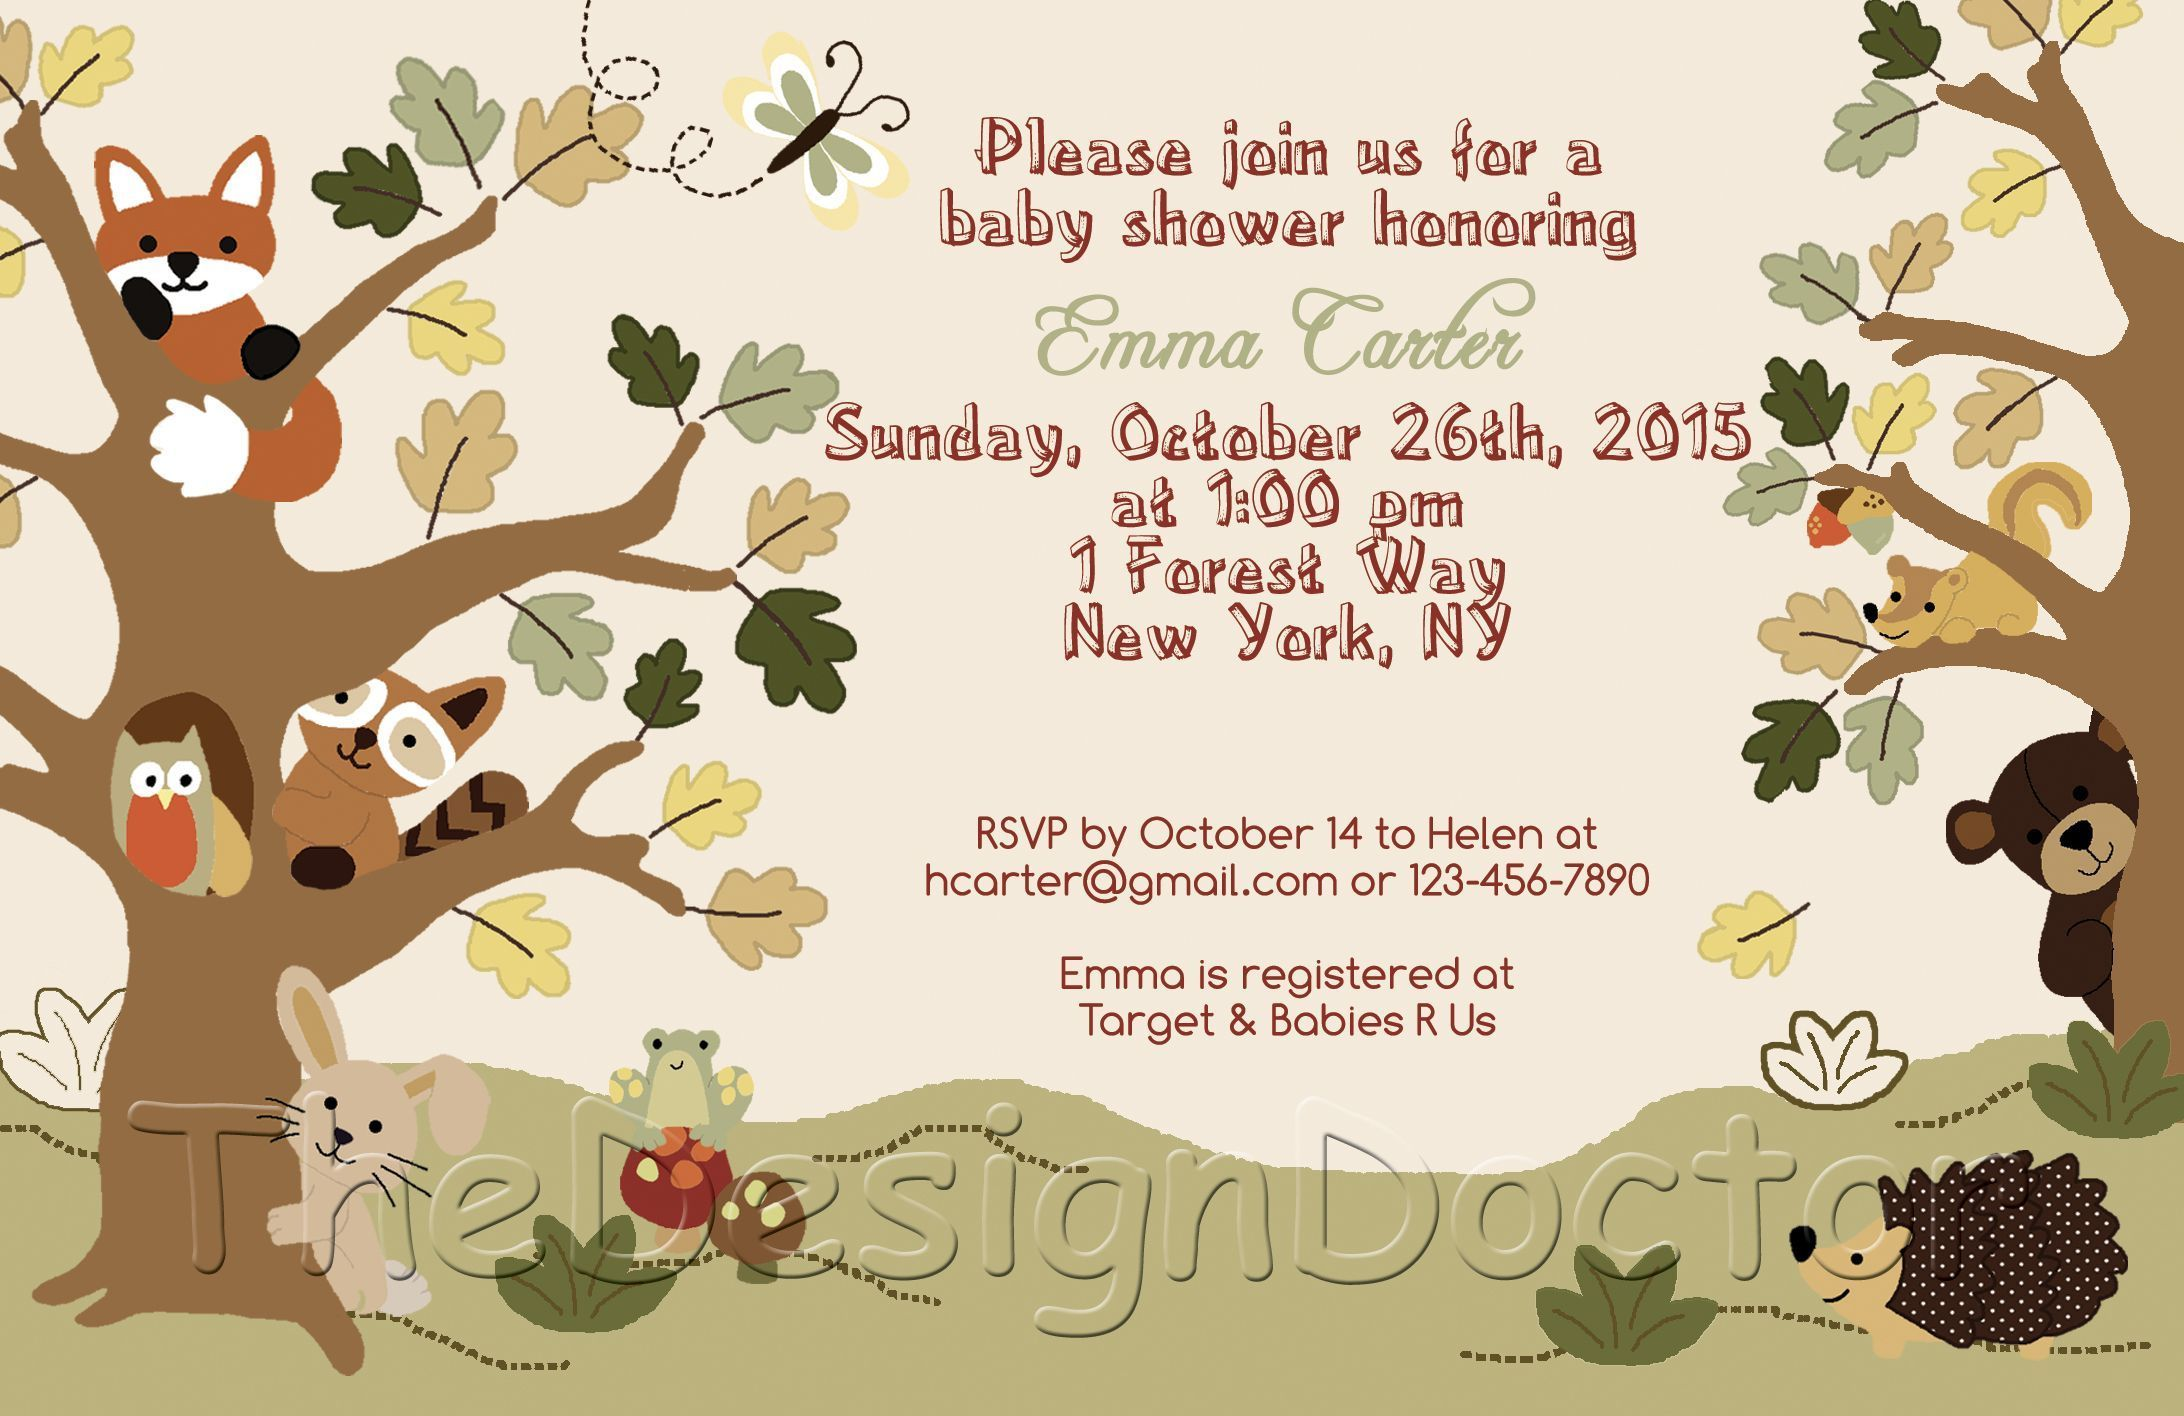 Woodland Creatures Baby Shower Invitations Free with beauteous appearance for wo...  Woodland Creatures Baby Shower Invitations Free with beauteous appearance for wo…, #appearance #B #appearance #Baby #beauteous #Creatures #Free #Invitations #Shower #Woodland